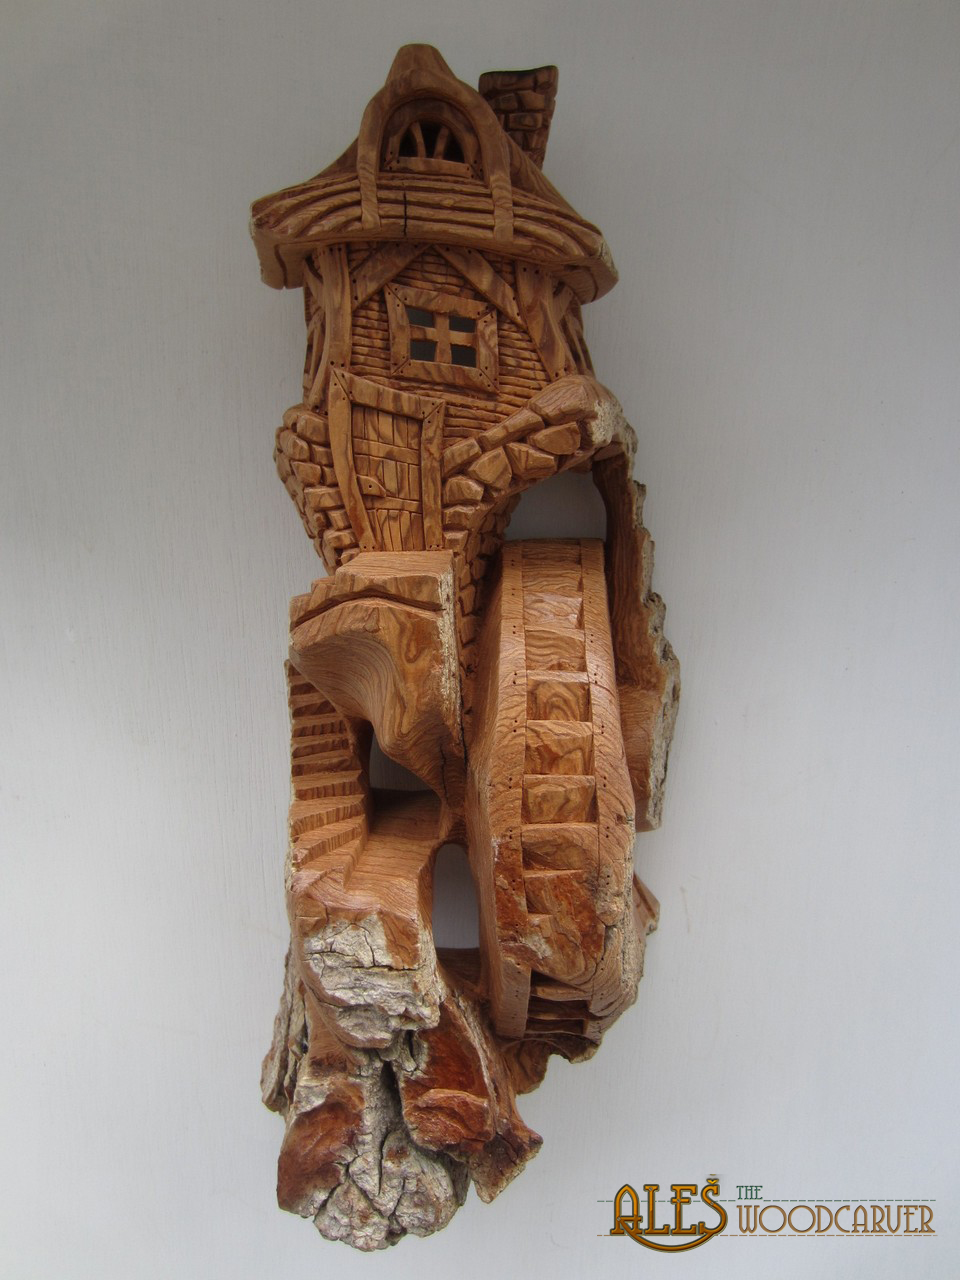 Ales the woodcarver and rest of carvings from